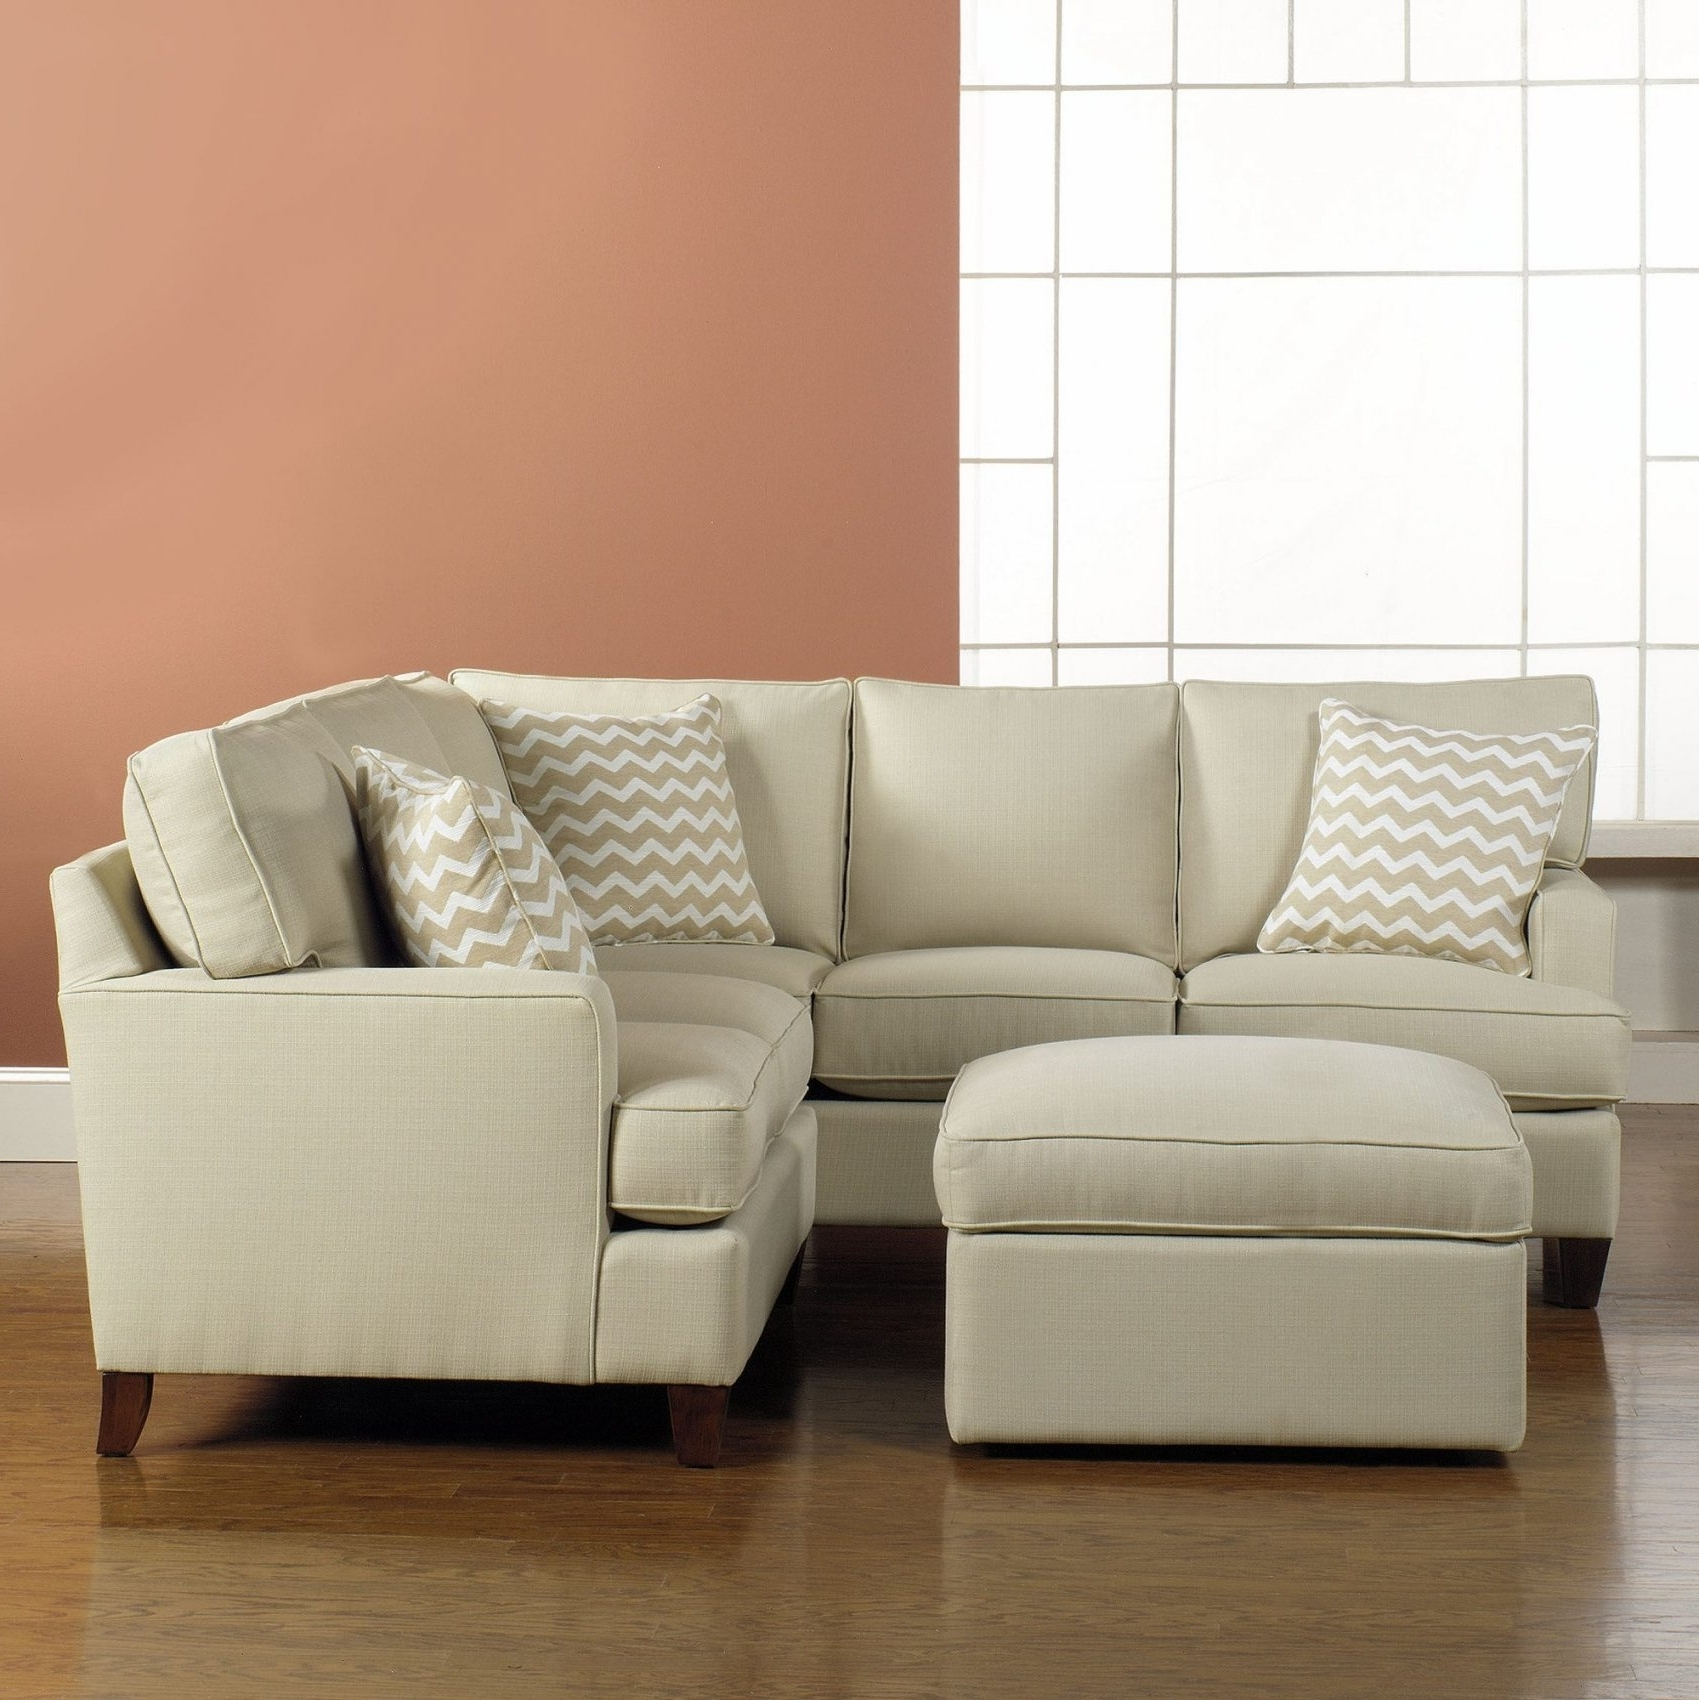 Sectional Sofas In Small Spaces For Recent Sectional Sofa For Small Spaces 94 In Living Room Sofa With (View 3 of 20)